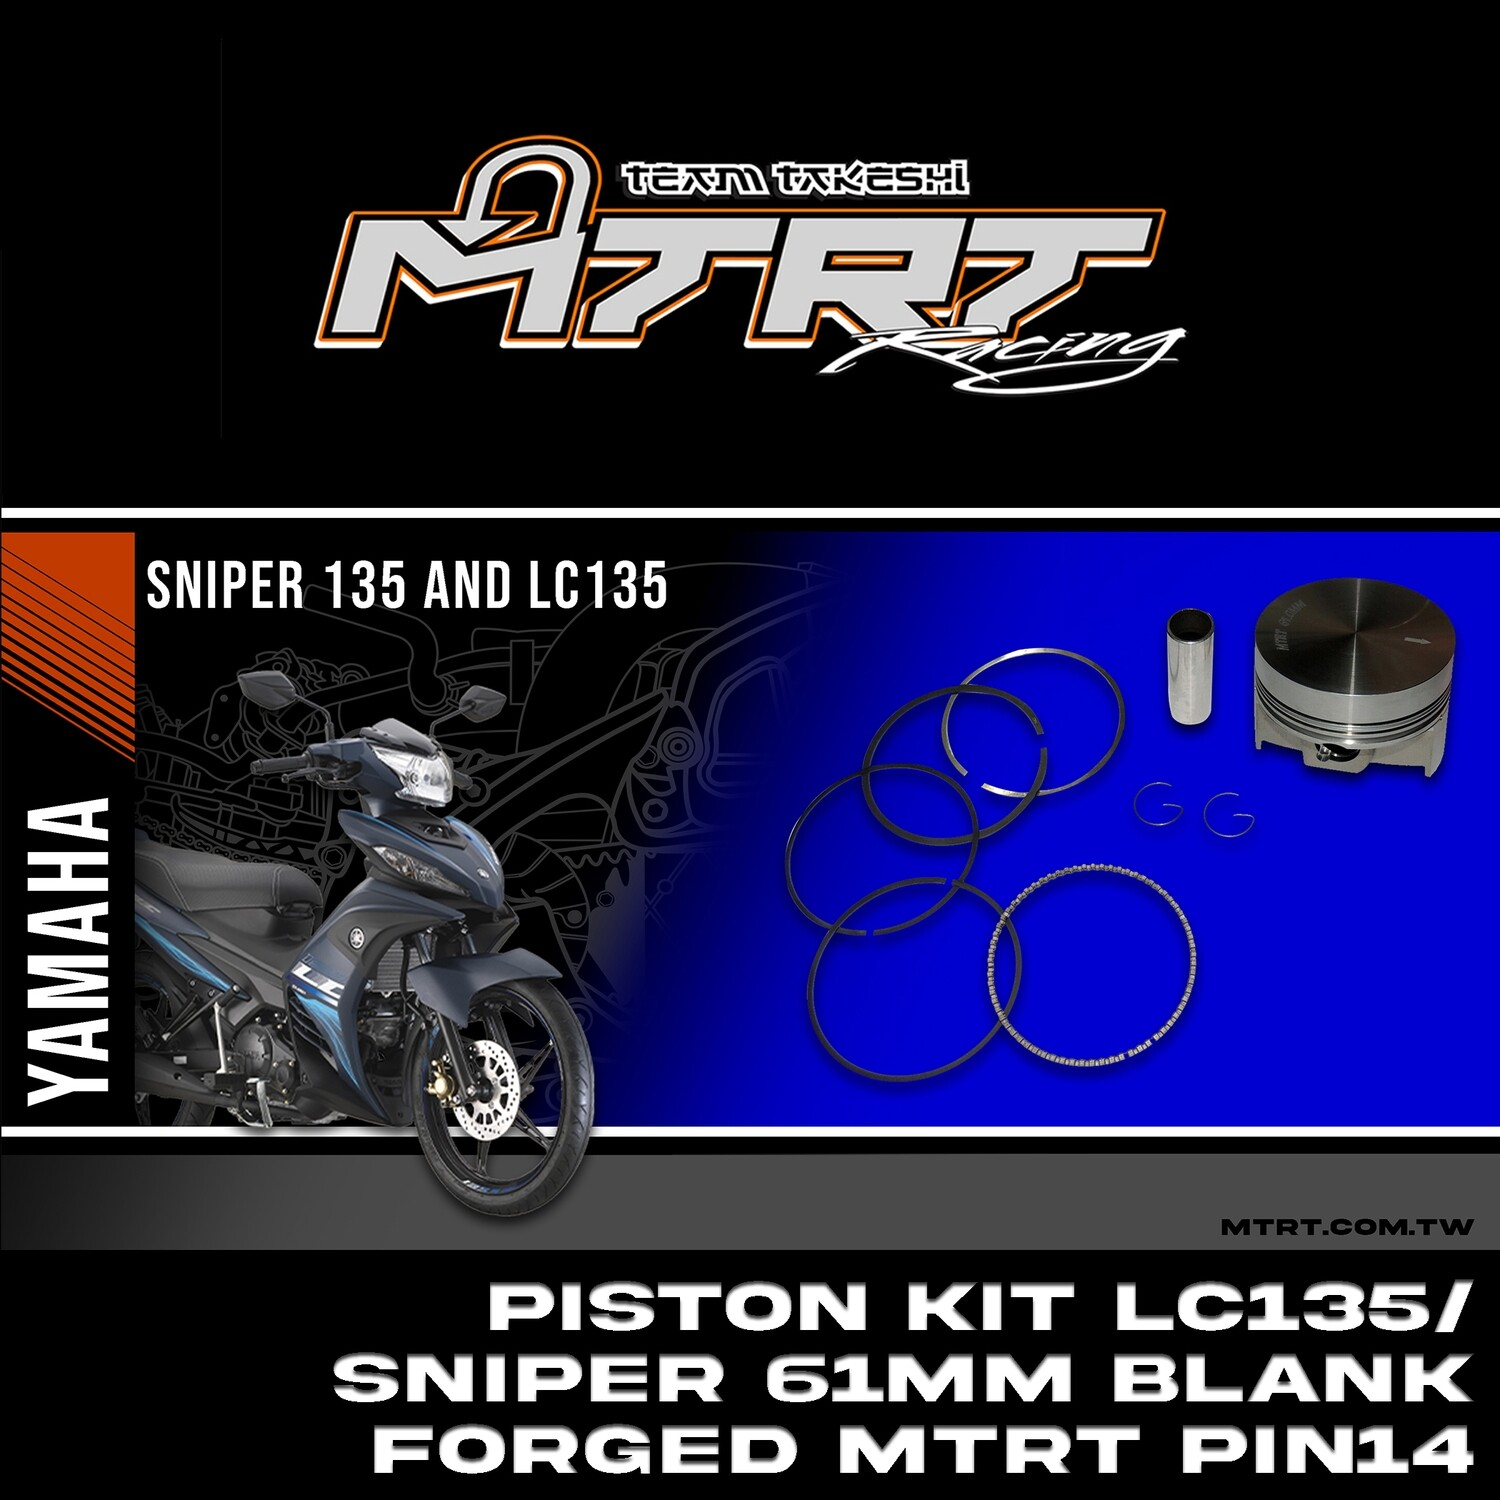 PISTON  KIT  LC135/SNIPER 61MM Blank Forged MTRT pin14